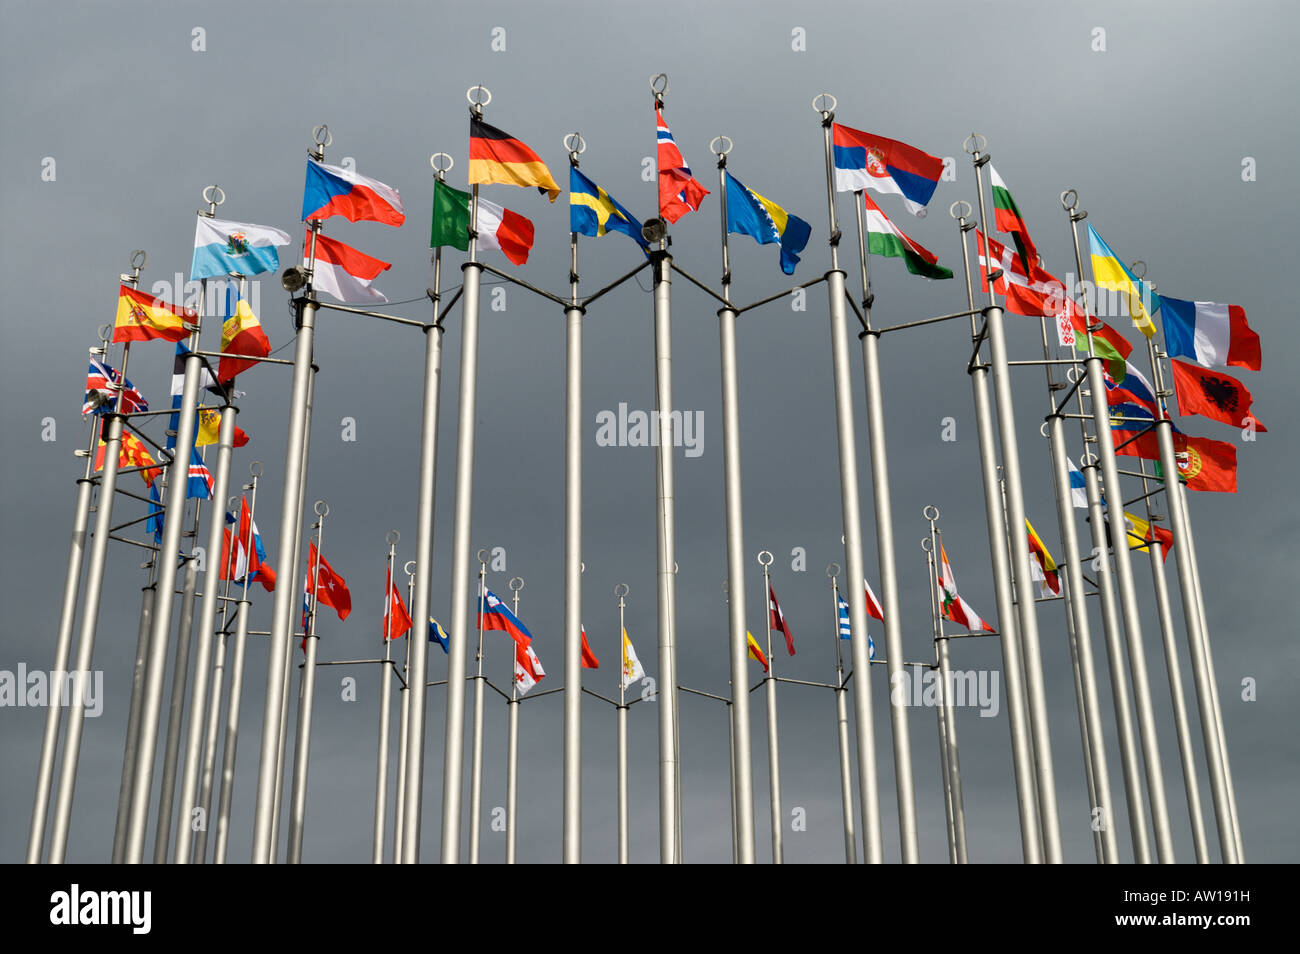 Flags of European countries - Stock Image